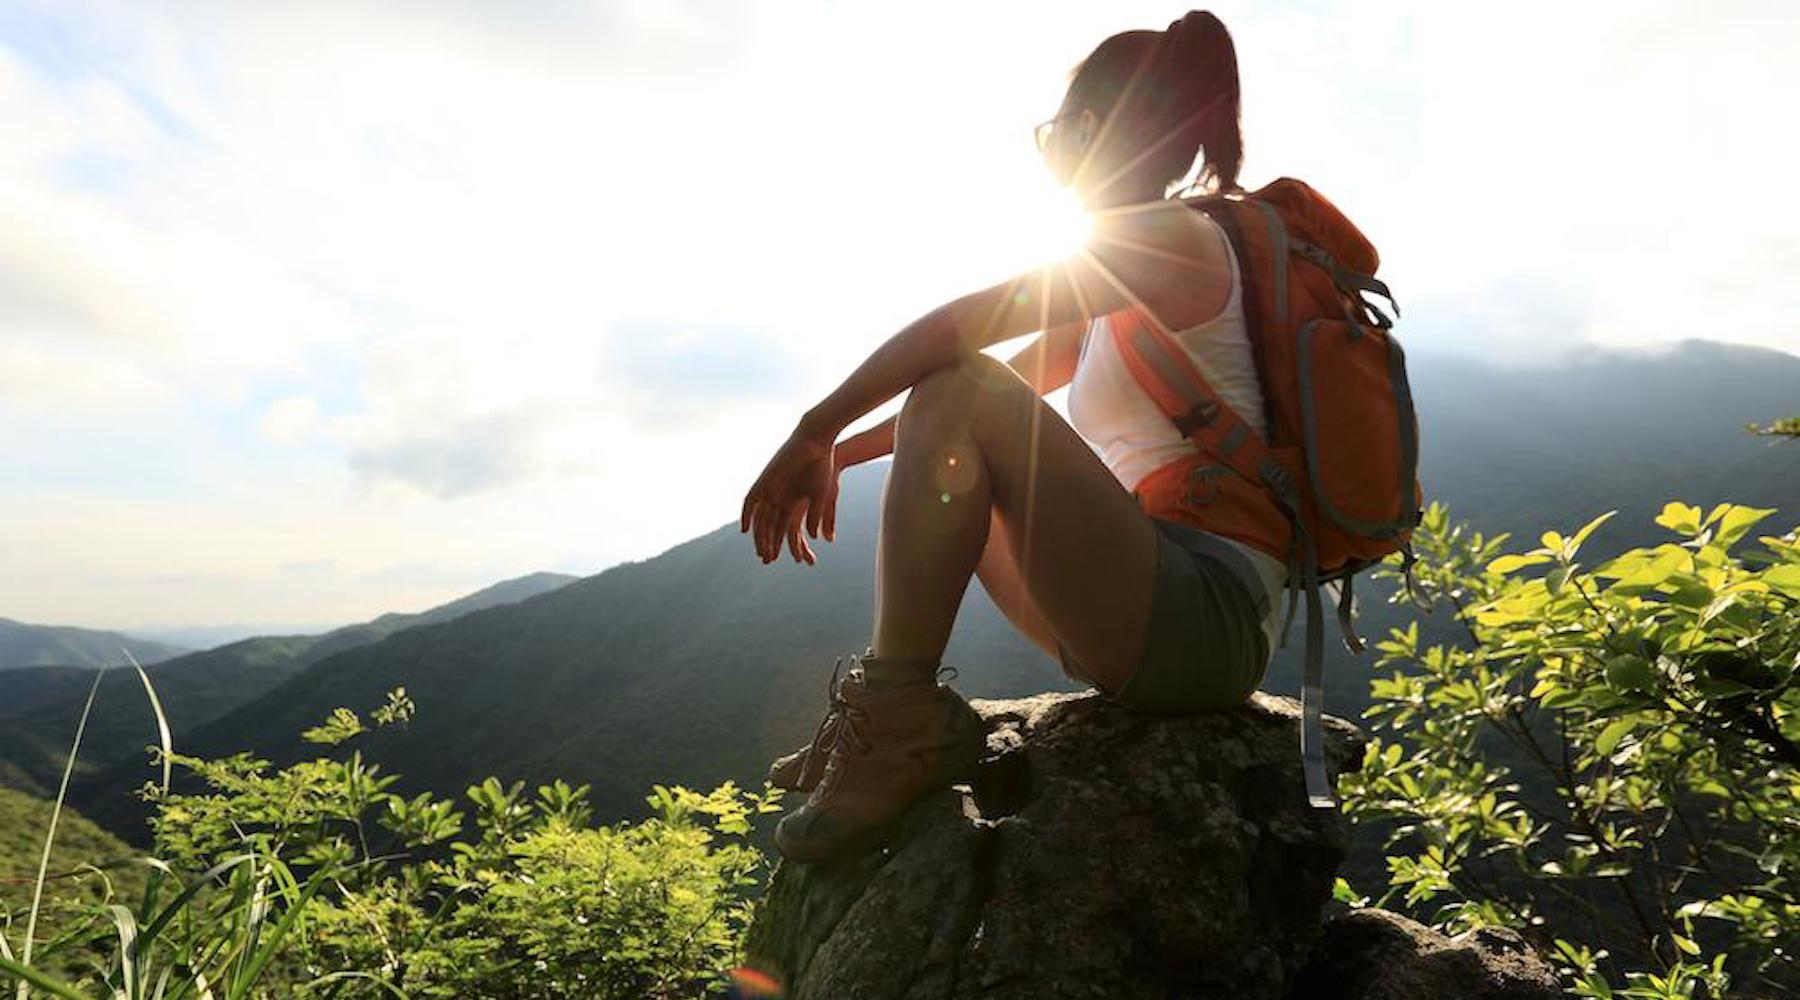 7 ESSENTIALS TO BRING ON YOUR NEXT HIKING TRIP